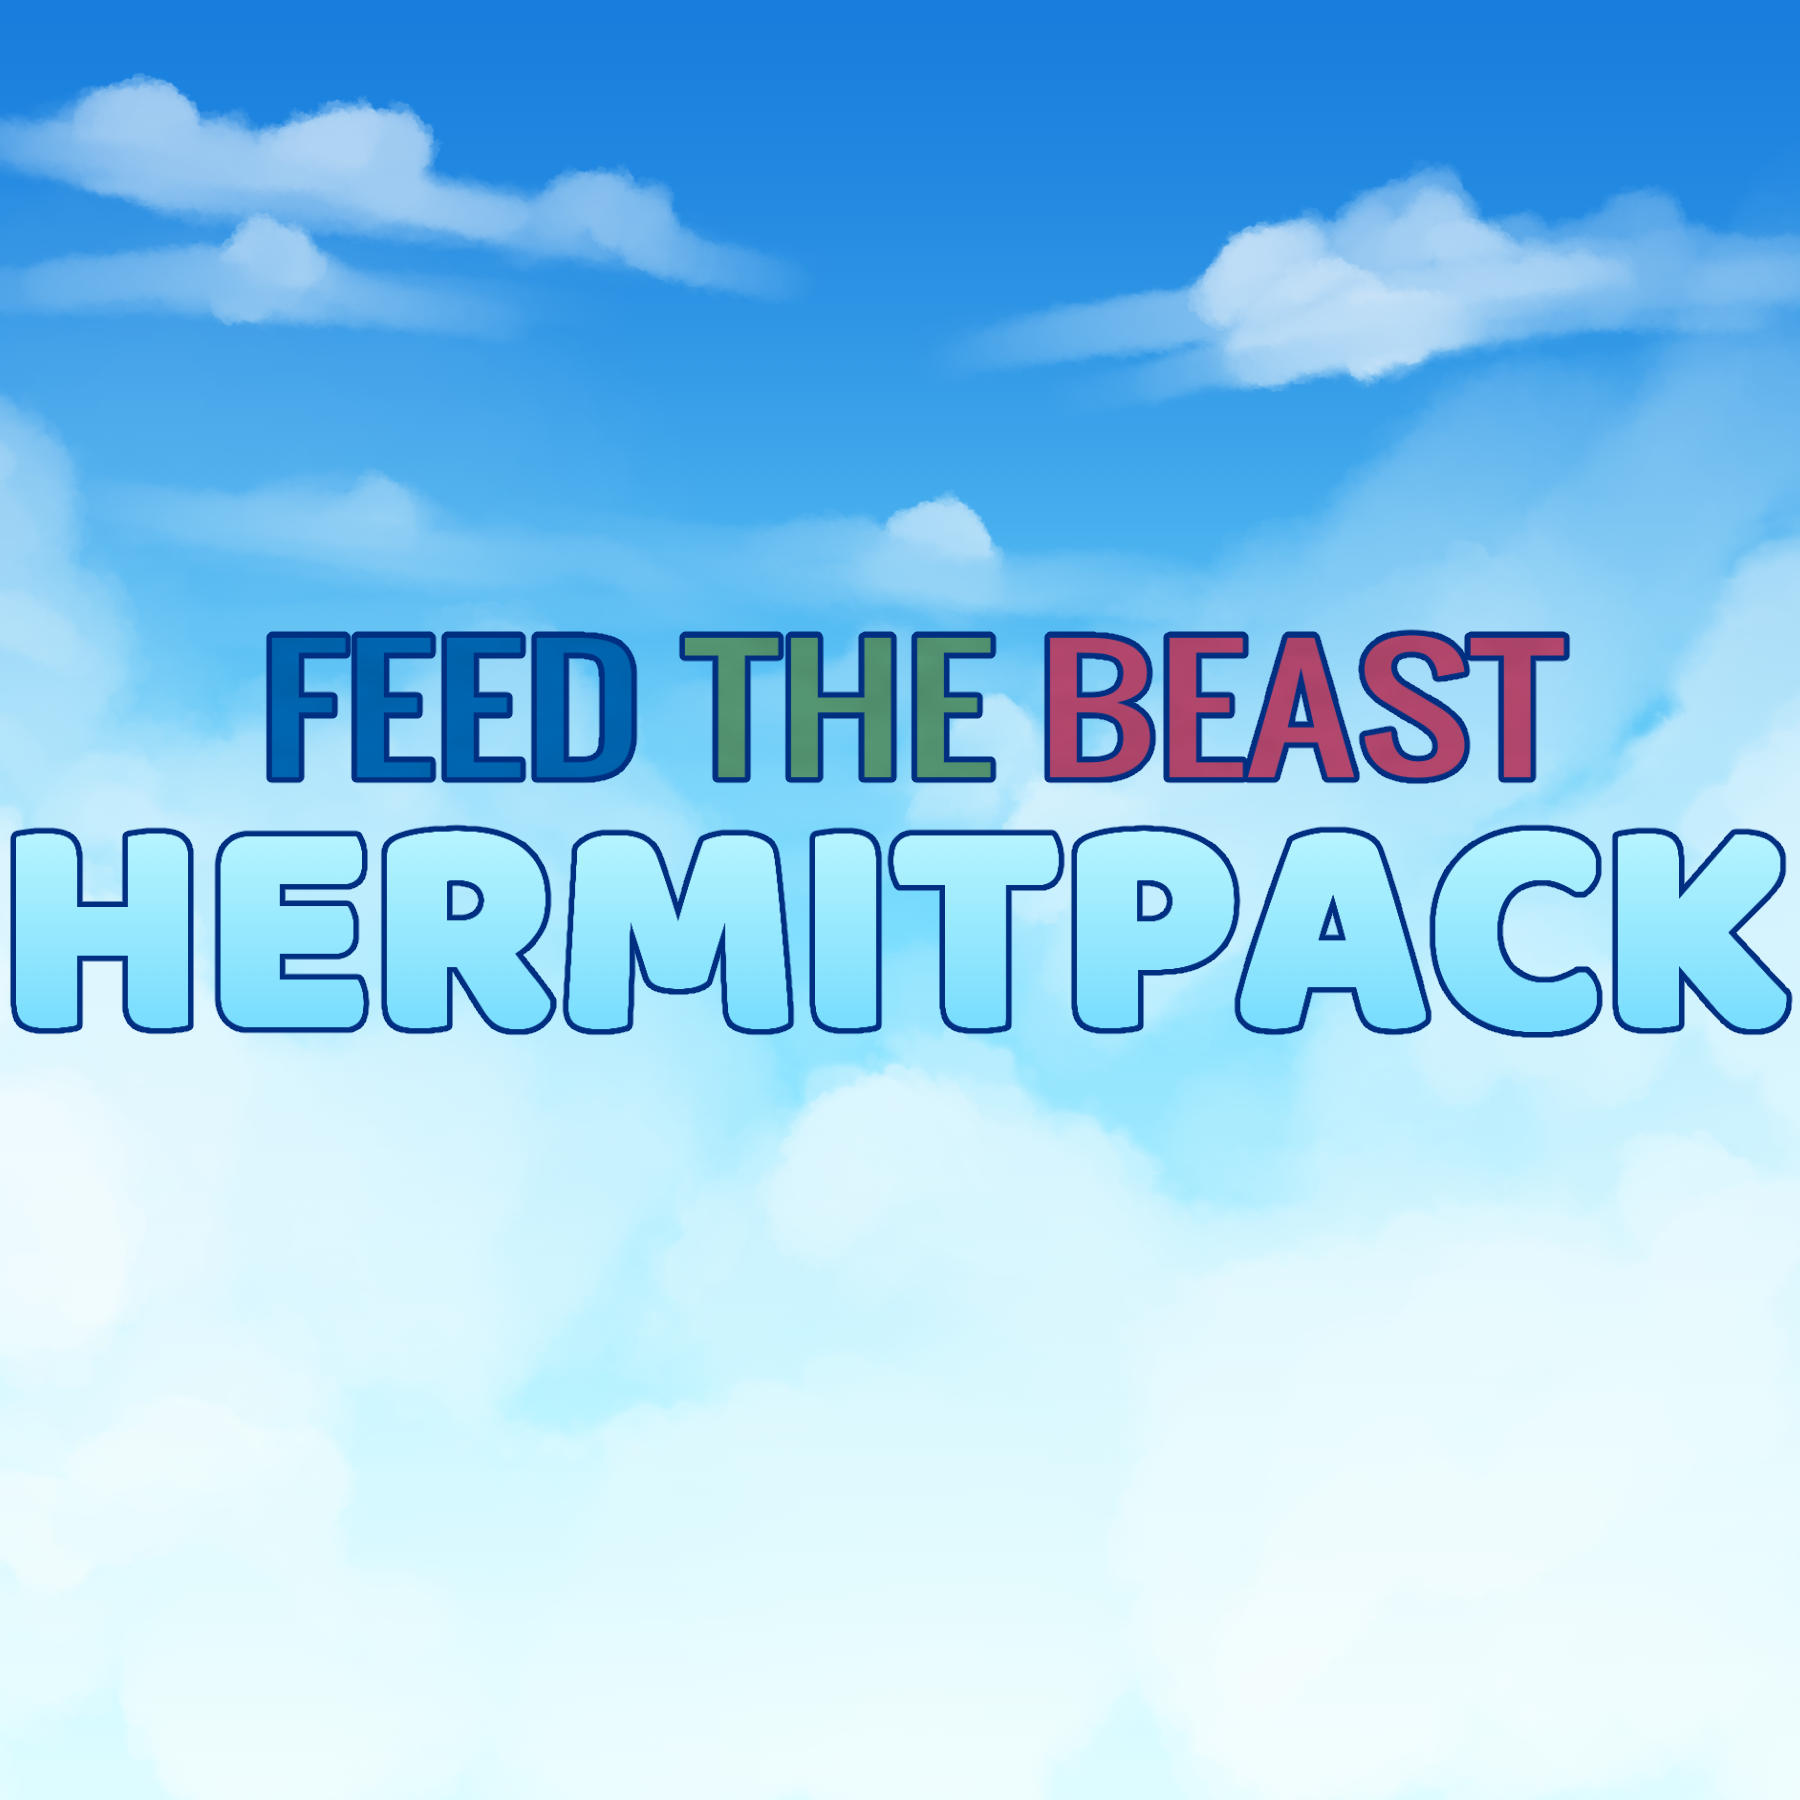 FTBPresentsHermitPack-1 7 0-1 10 2 zip - Files - FTB Presents